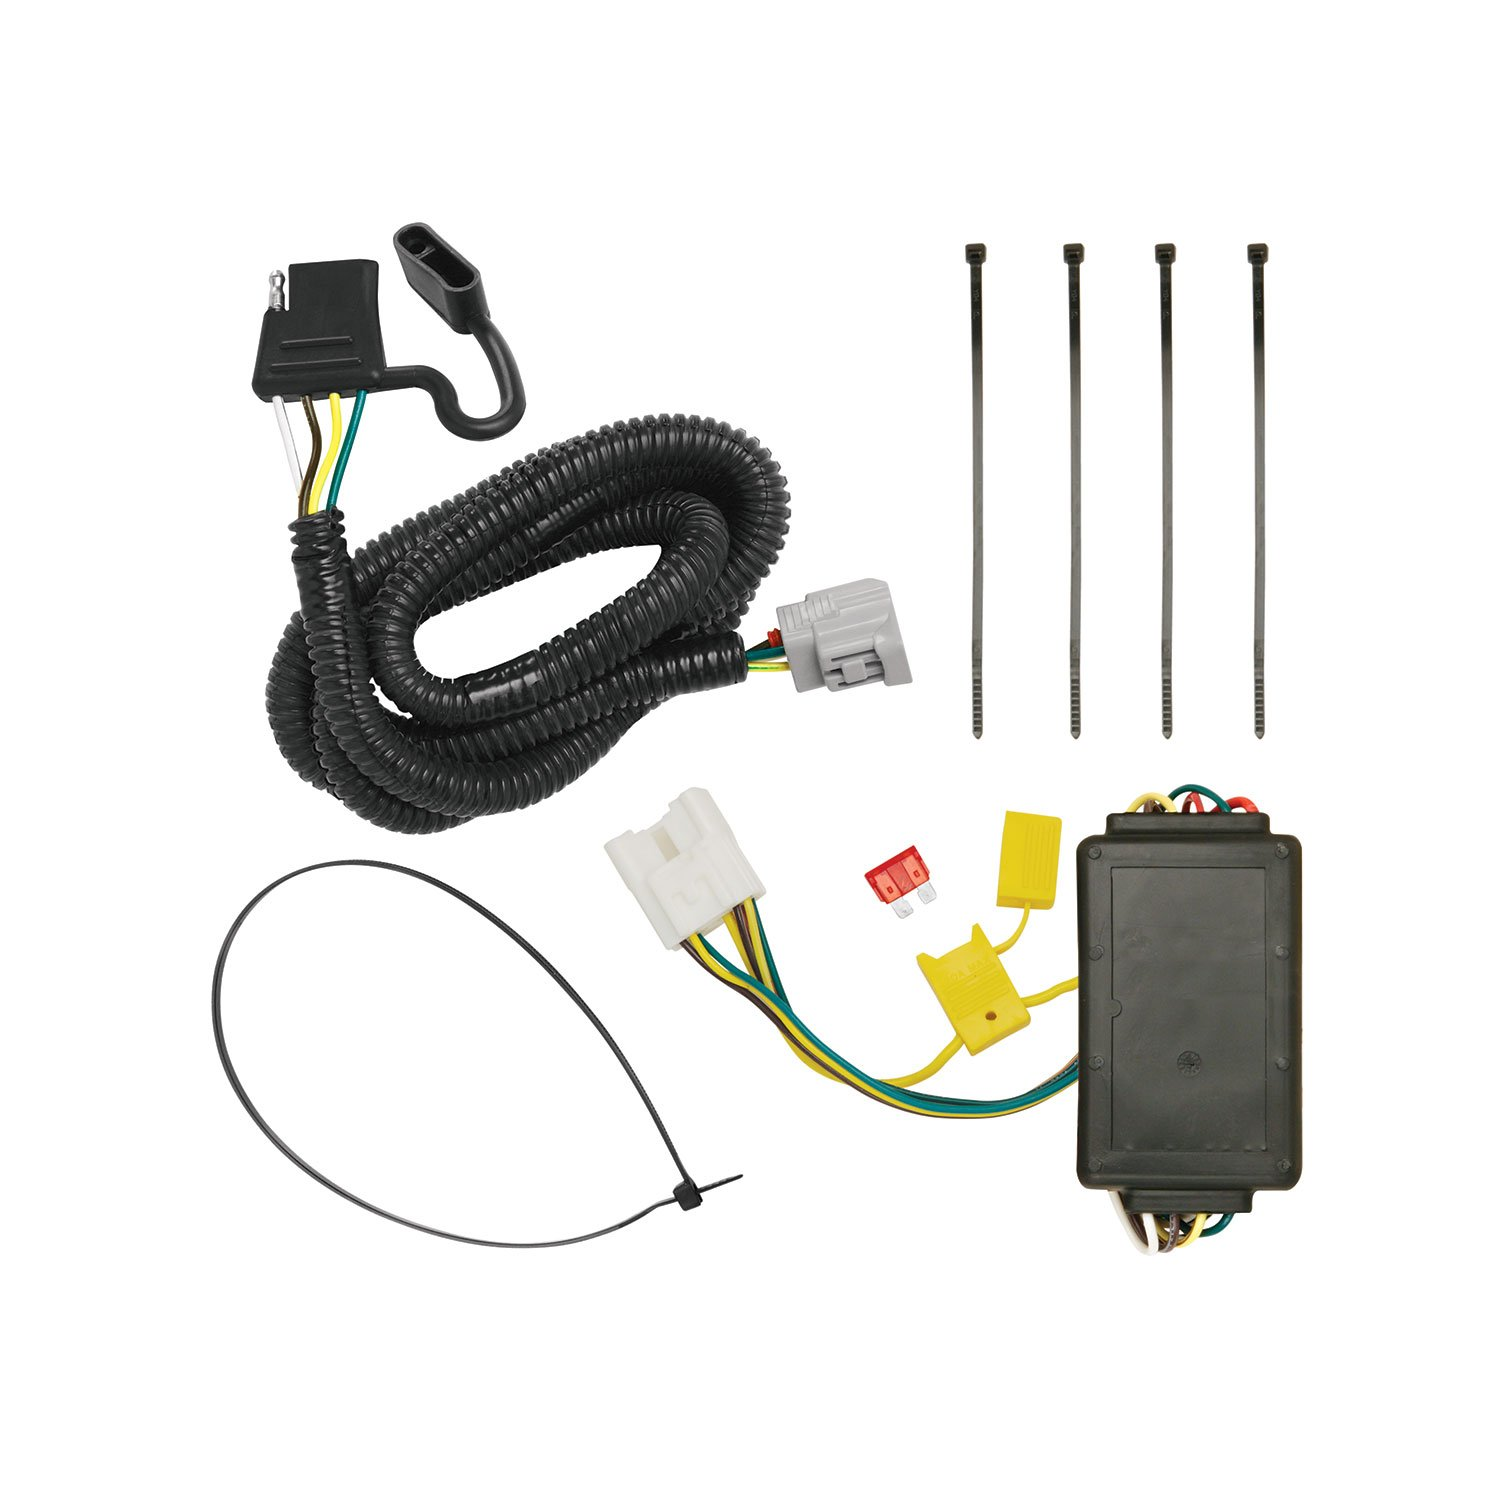 Cheap Flat Module Find Deals On Line At Alibabacom Printing Machine Circuit Board Heidelberg Ltk500 For Get Quotations Tekonsha 118255 4 Tow Harness Wiring Package With Protected Modulite